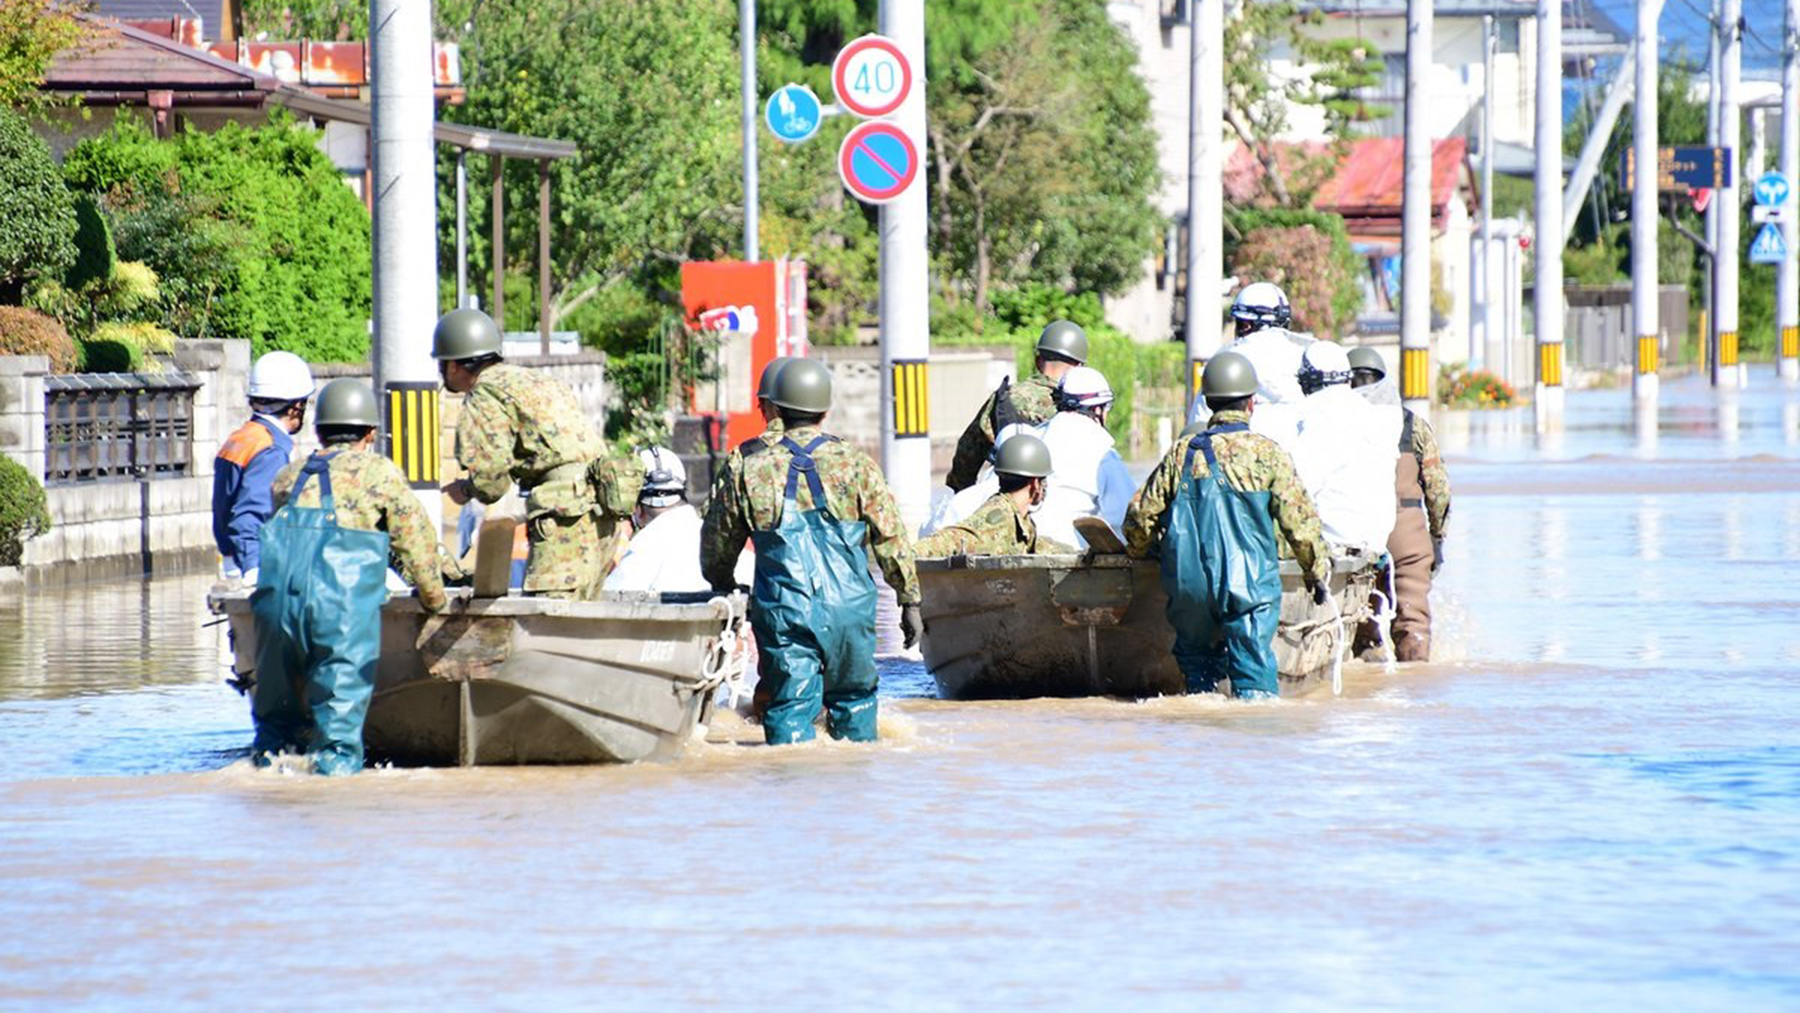 Japan's Self-Defense Forces respond after Typhoon Hagibis. The country, which is vulnerable to a number of natural disasters, has a sophisticated disaster management system in place. (Photo courtesy of Ministry of Defense and Self-Defense Forces)